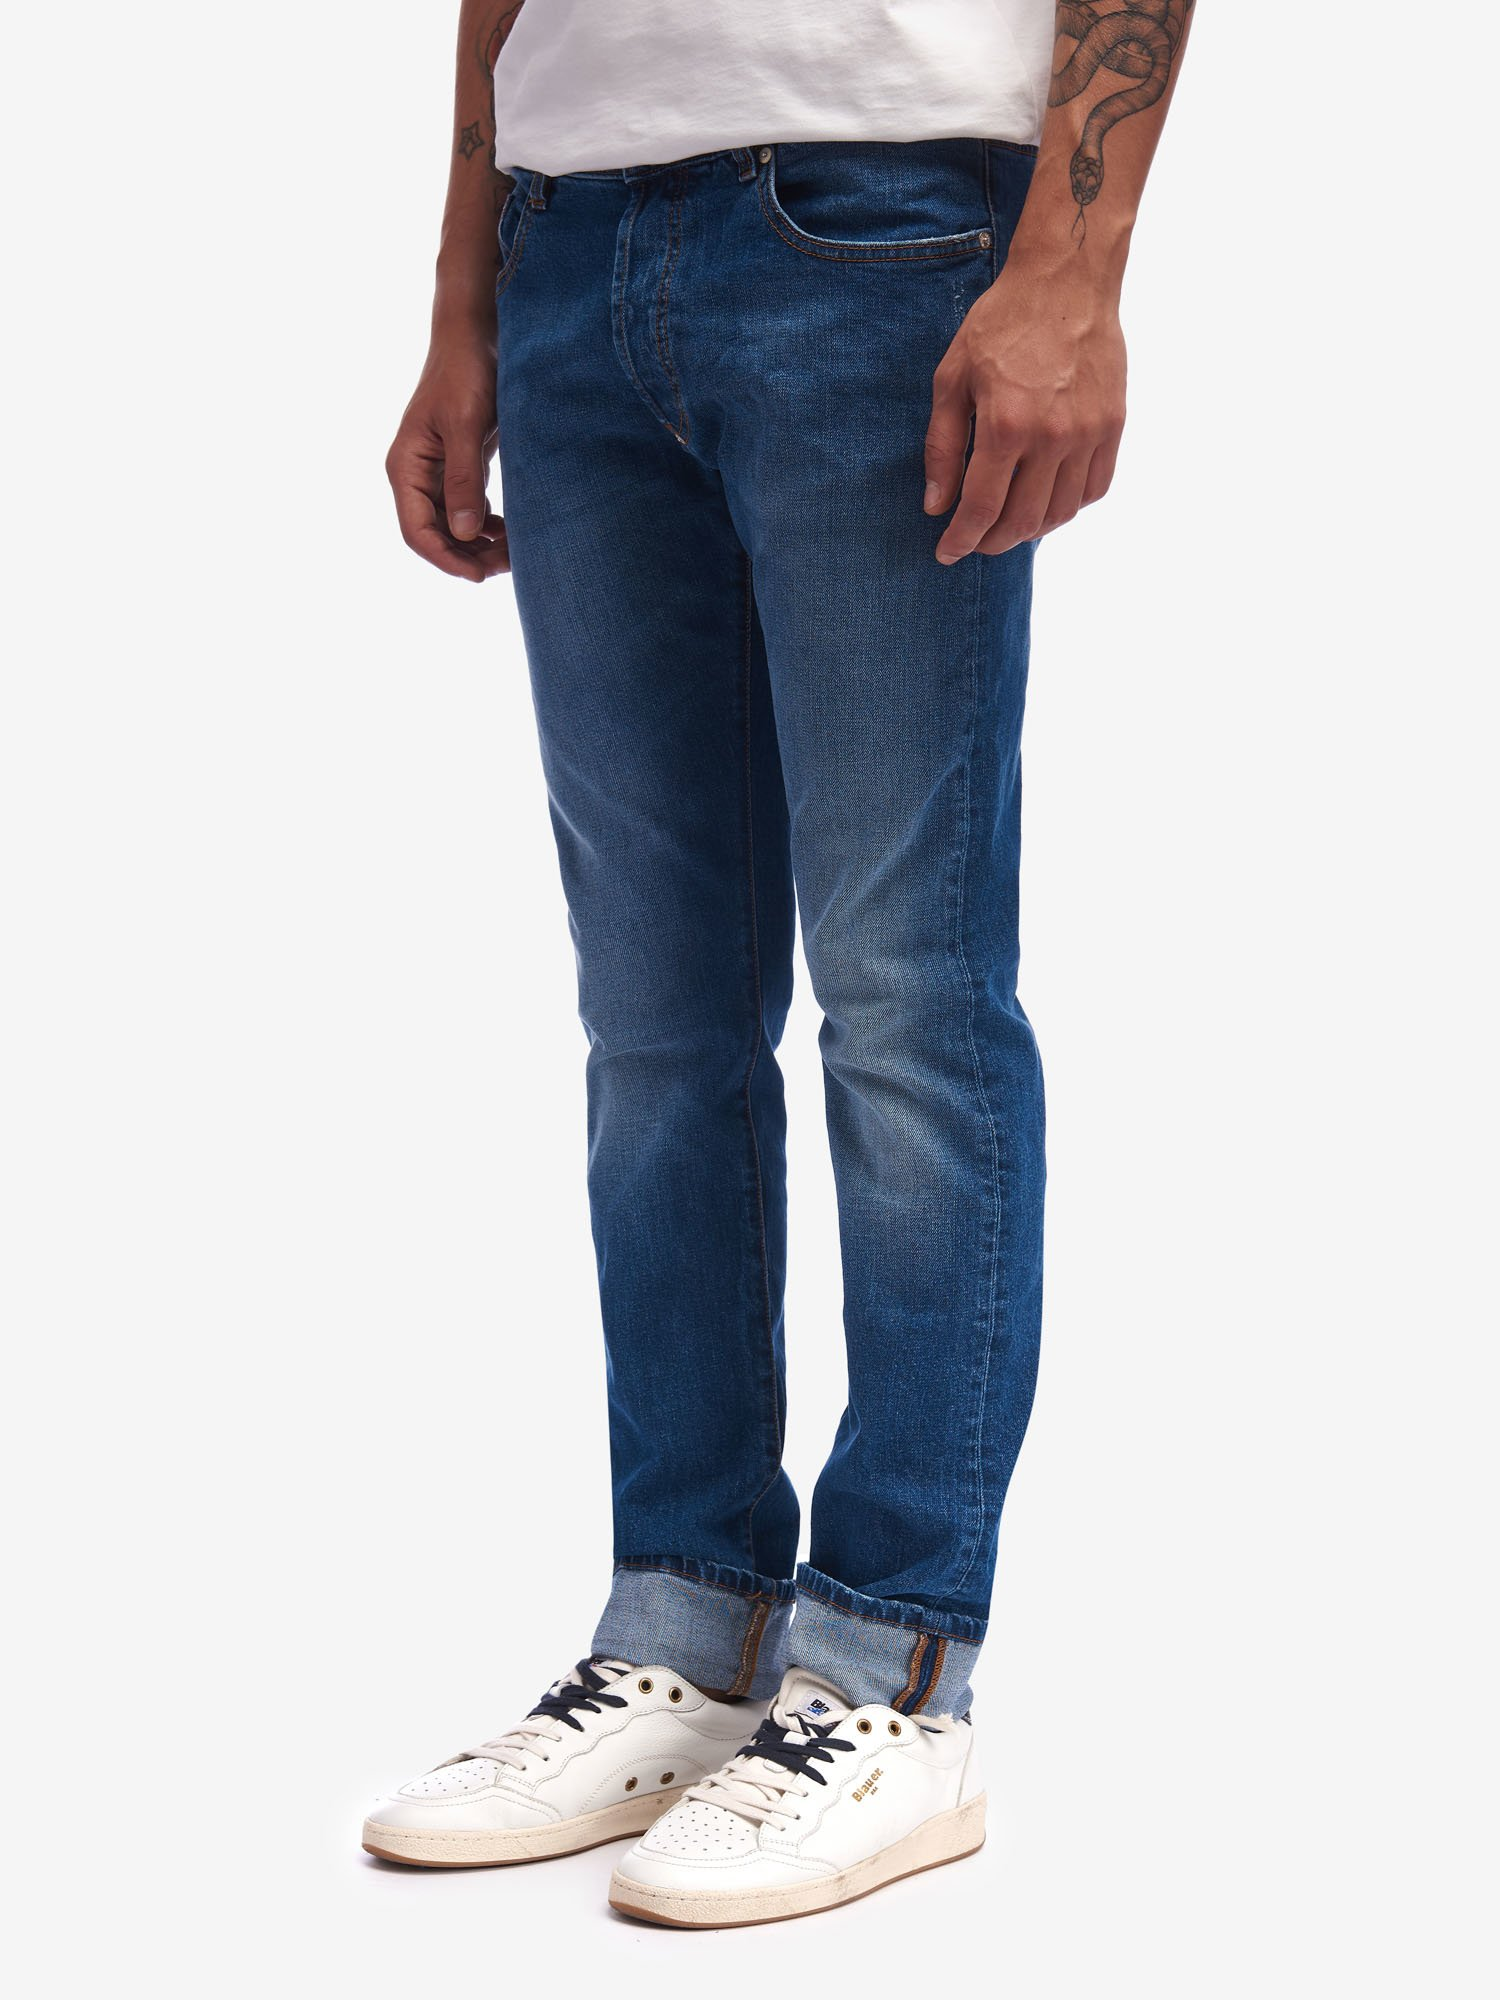 PANTALONE DENIM STRETCH - Blauer